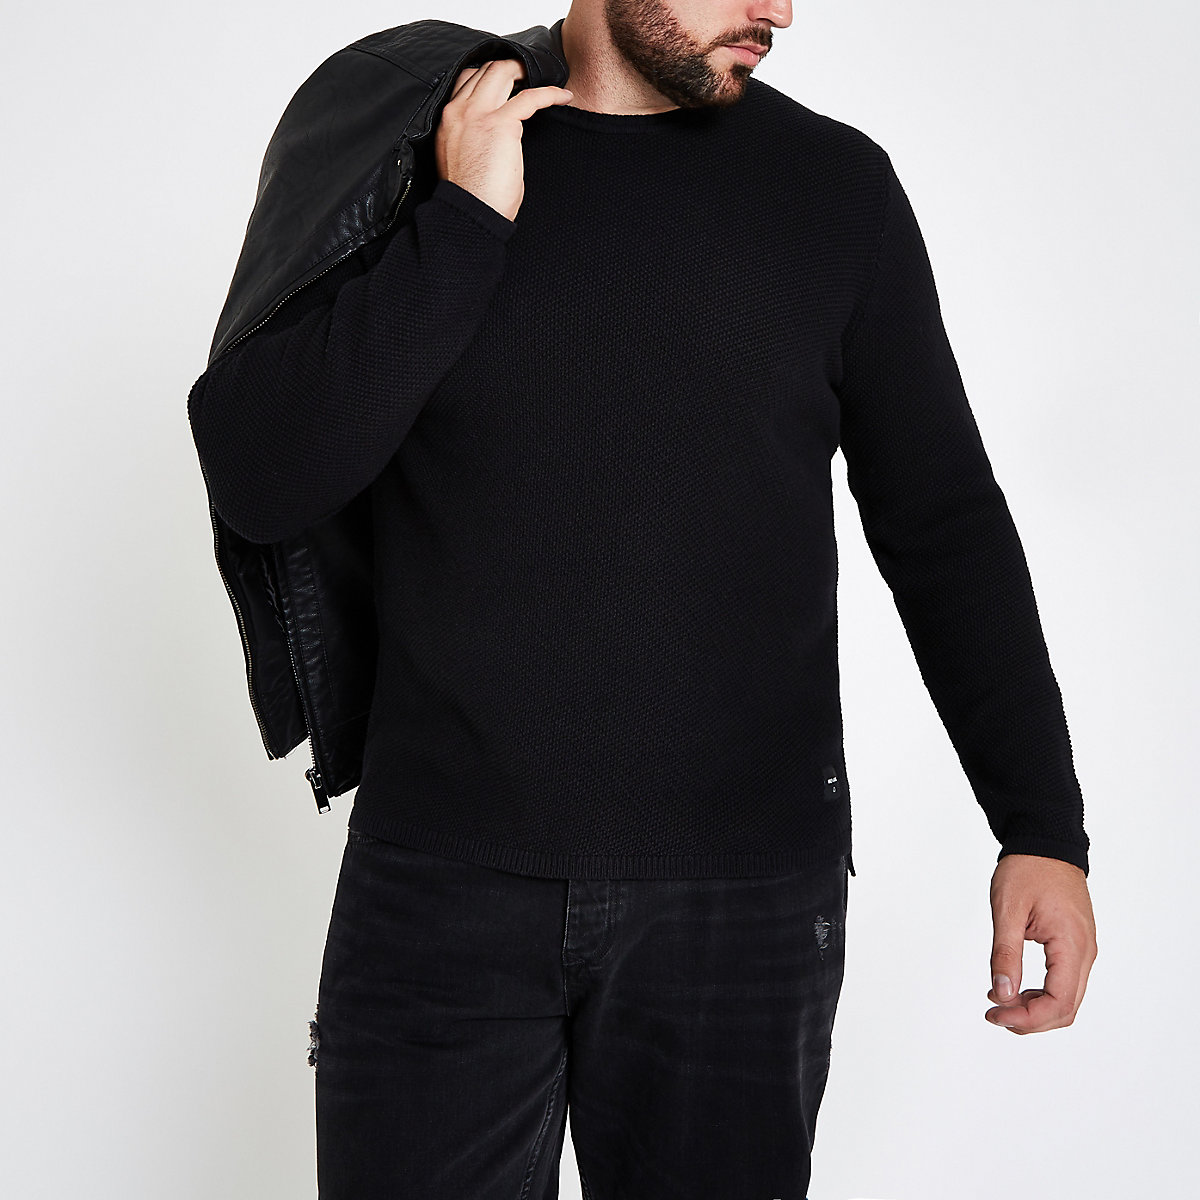 Only & Sons – Big & Tall – Schwarzer Pullover